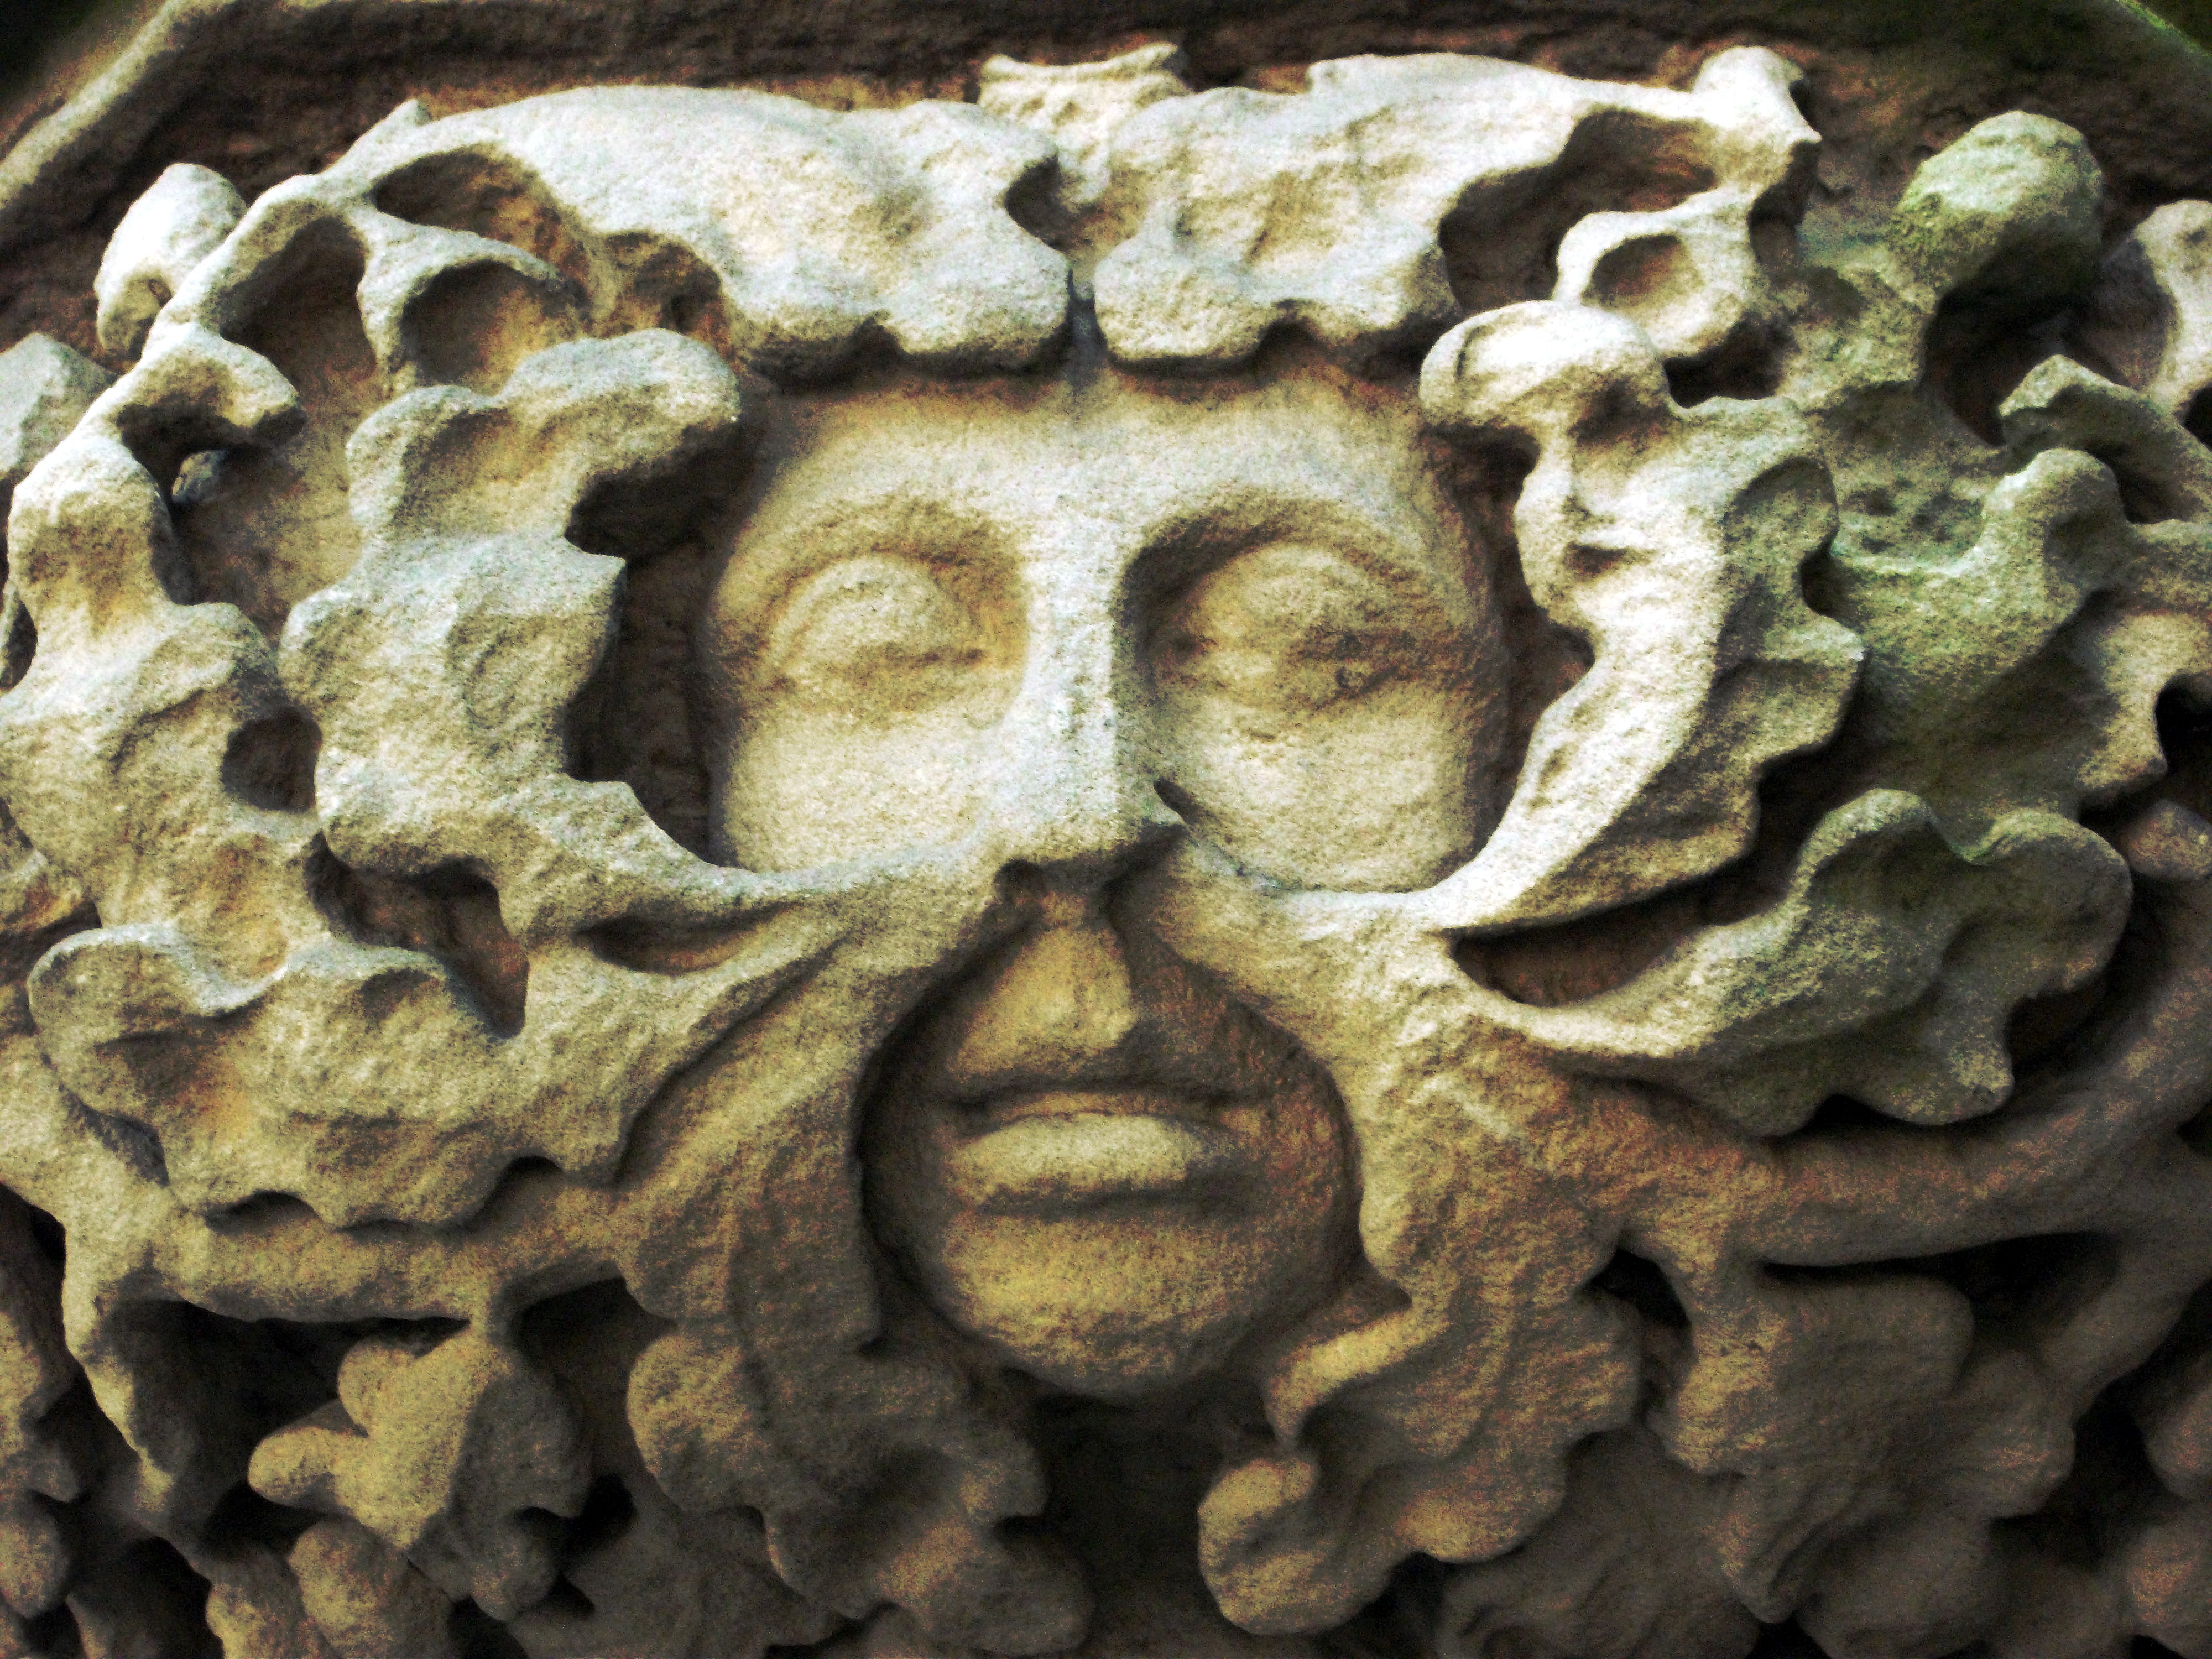 Stone carving of a Green Man with foliage extruding from his nose